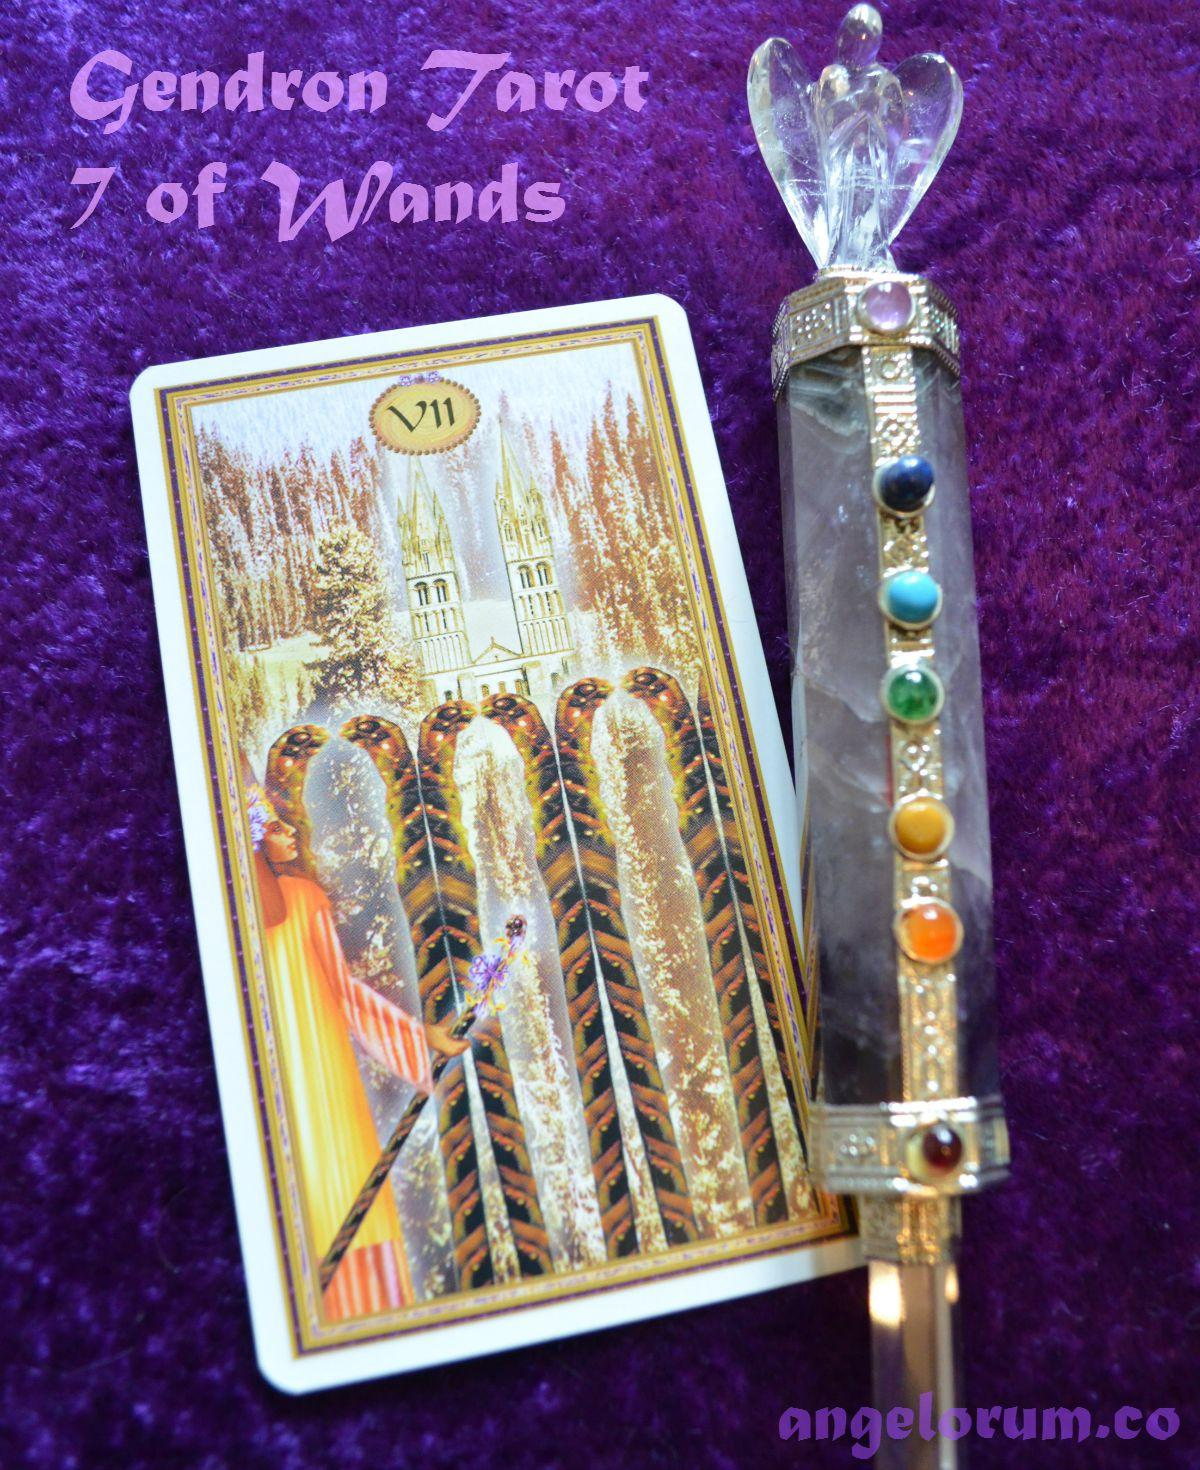 7 of Wands Daily Inspiration Gendron Tarot